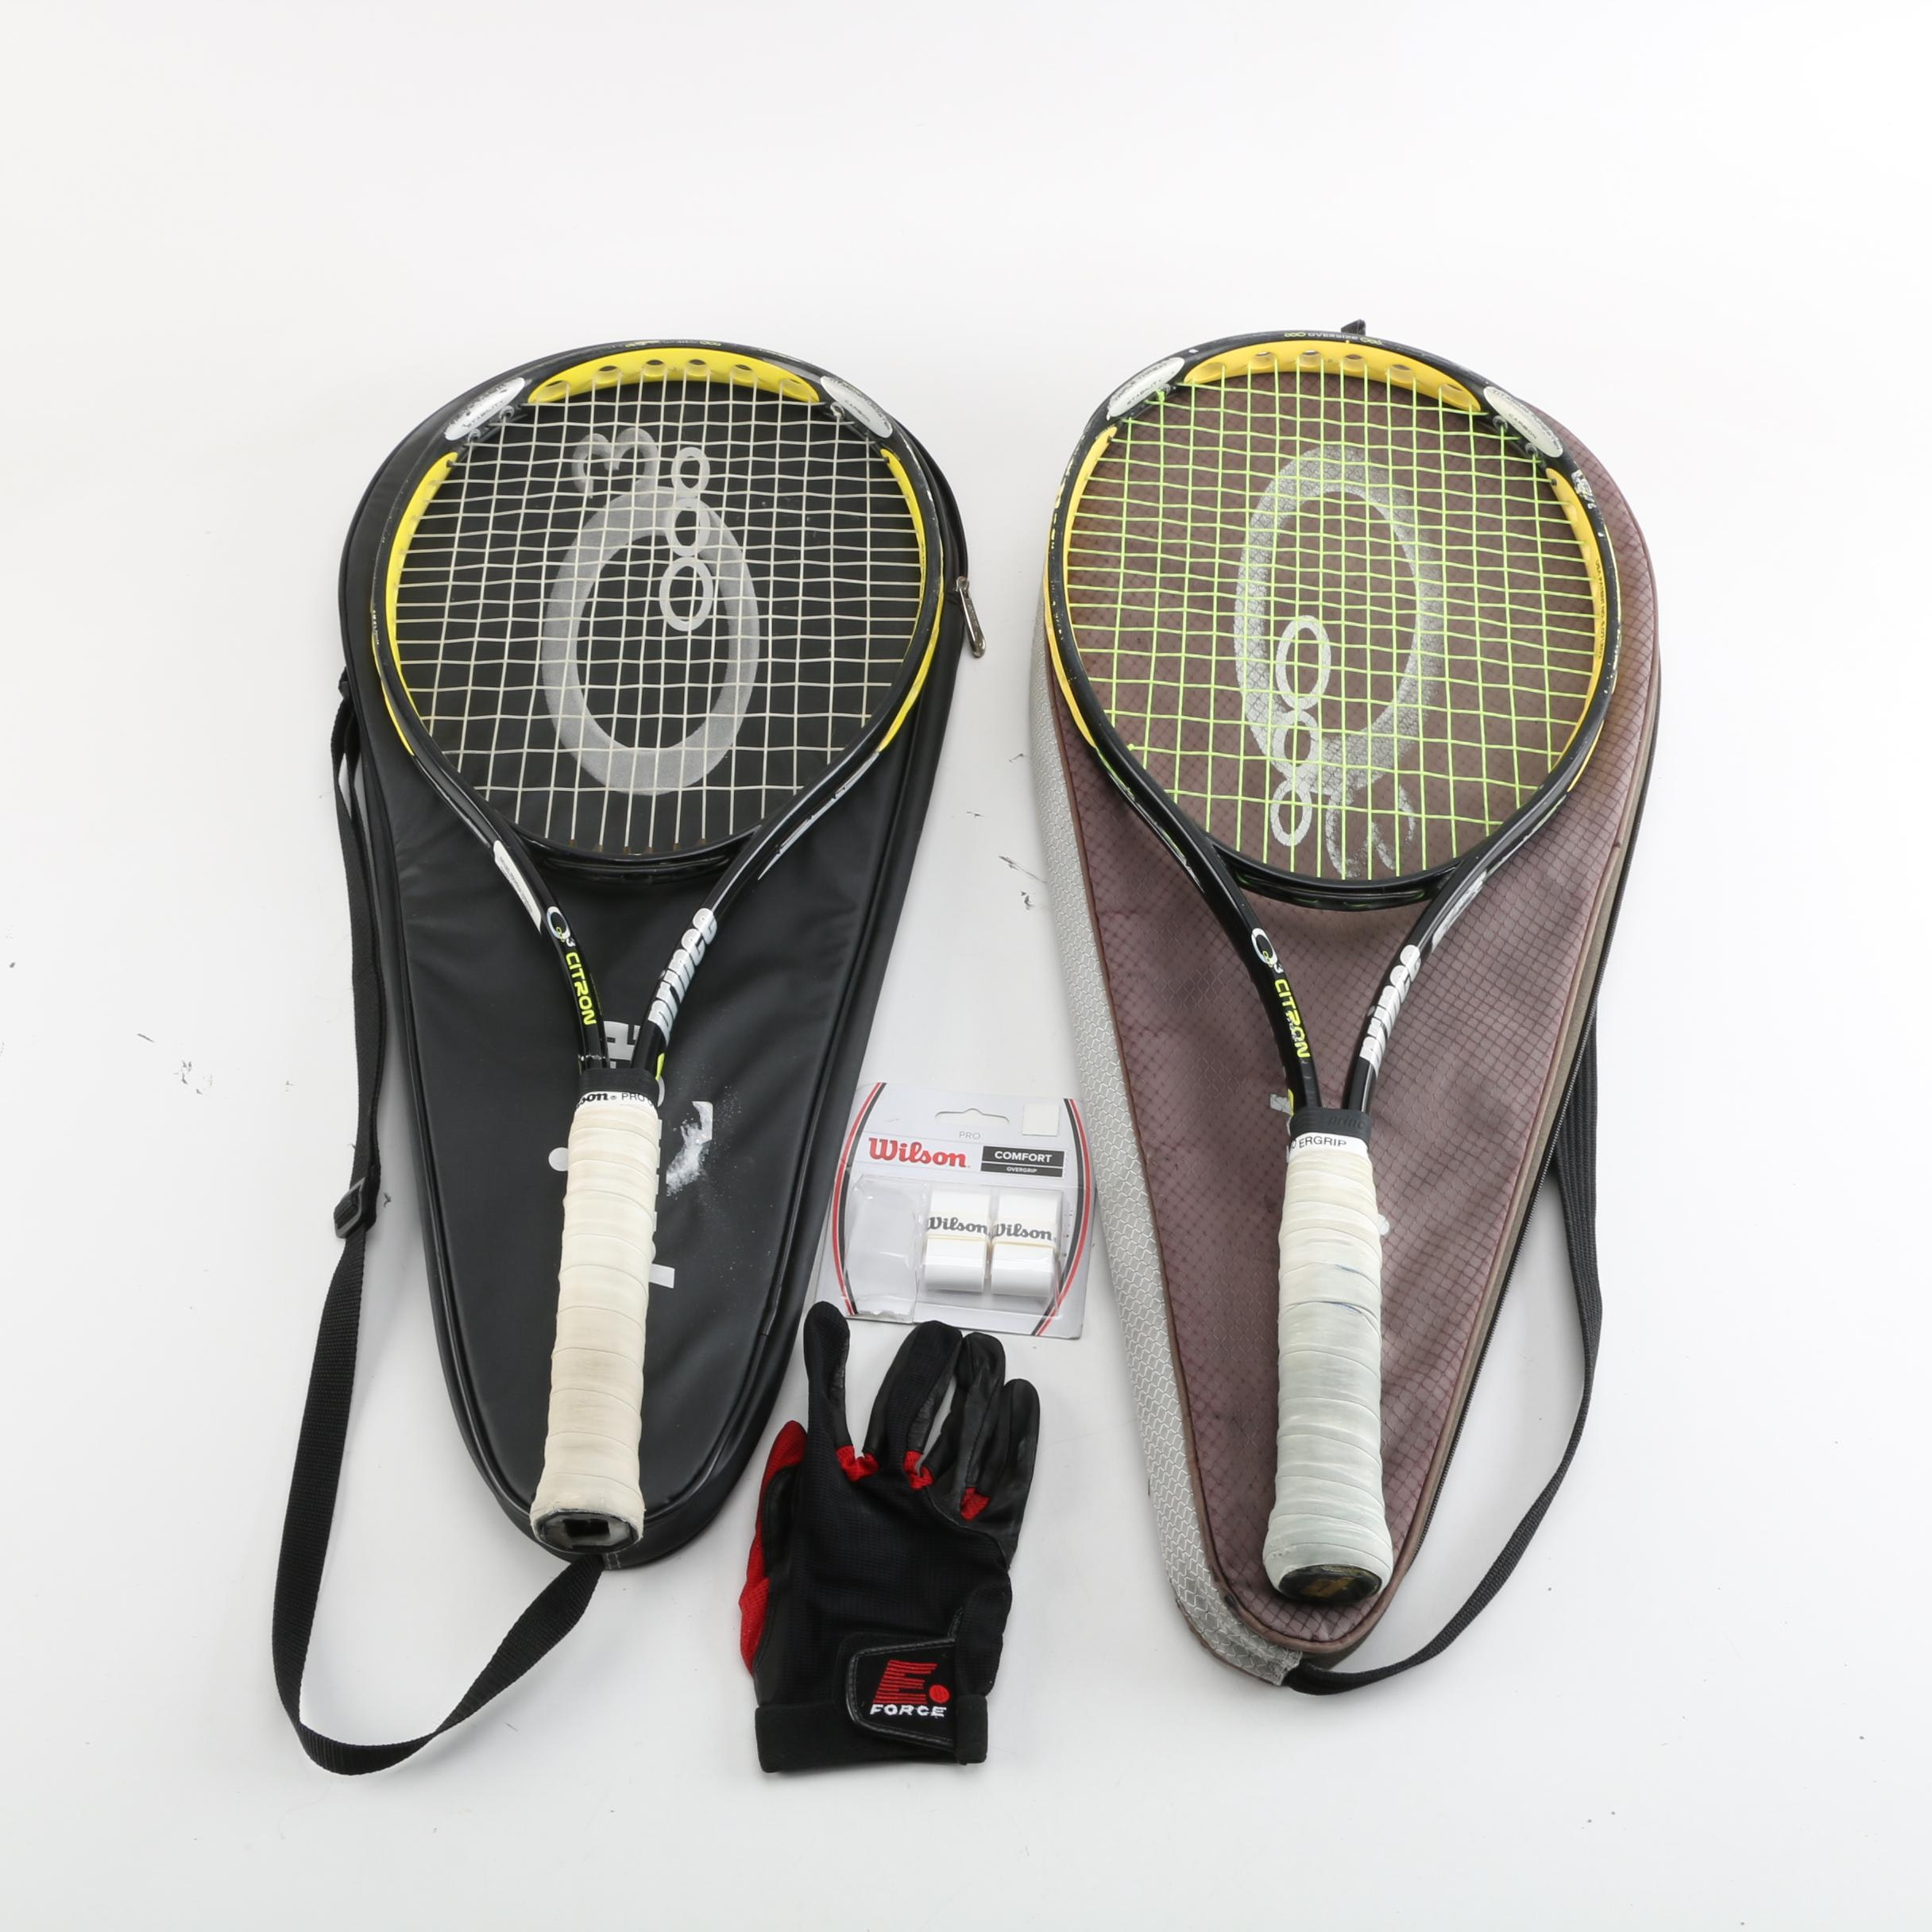 Prince O3 Citron Tennis Rackets with Covers, Wilson Grips, and E-Force Glove